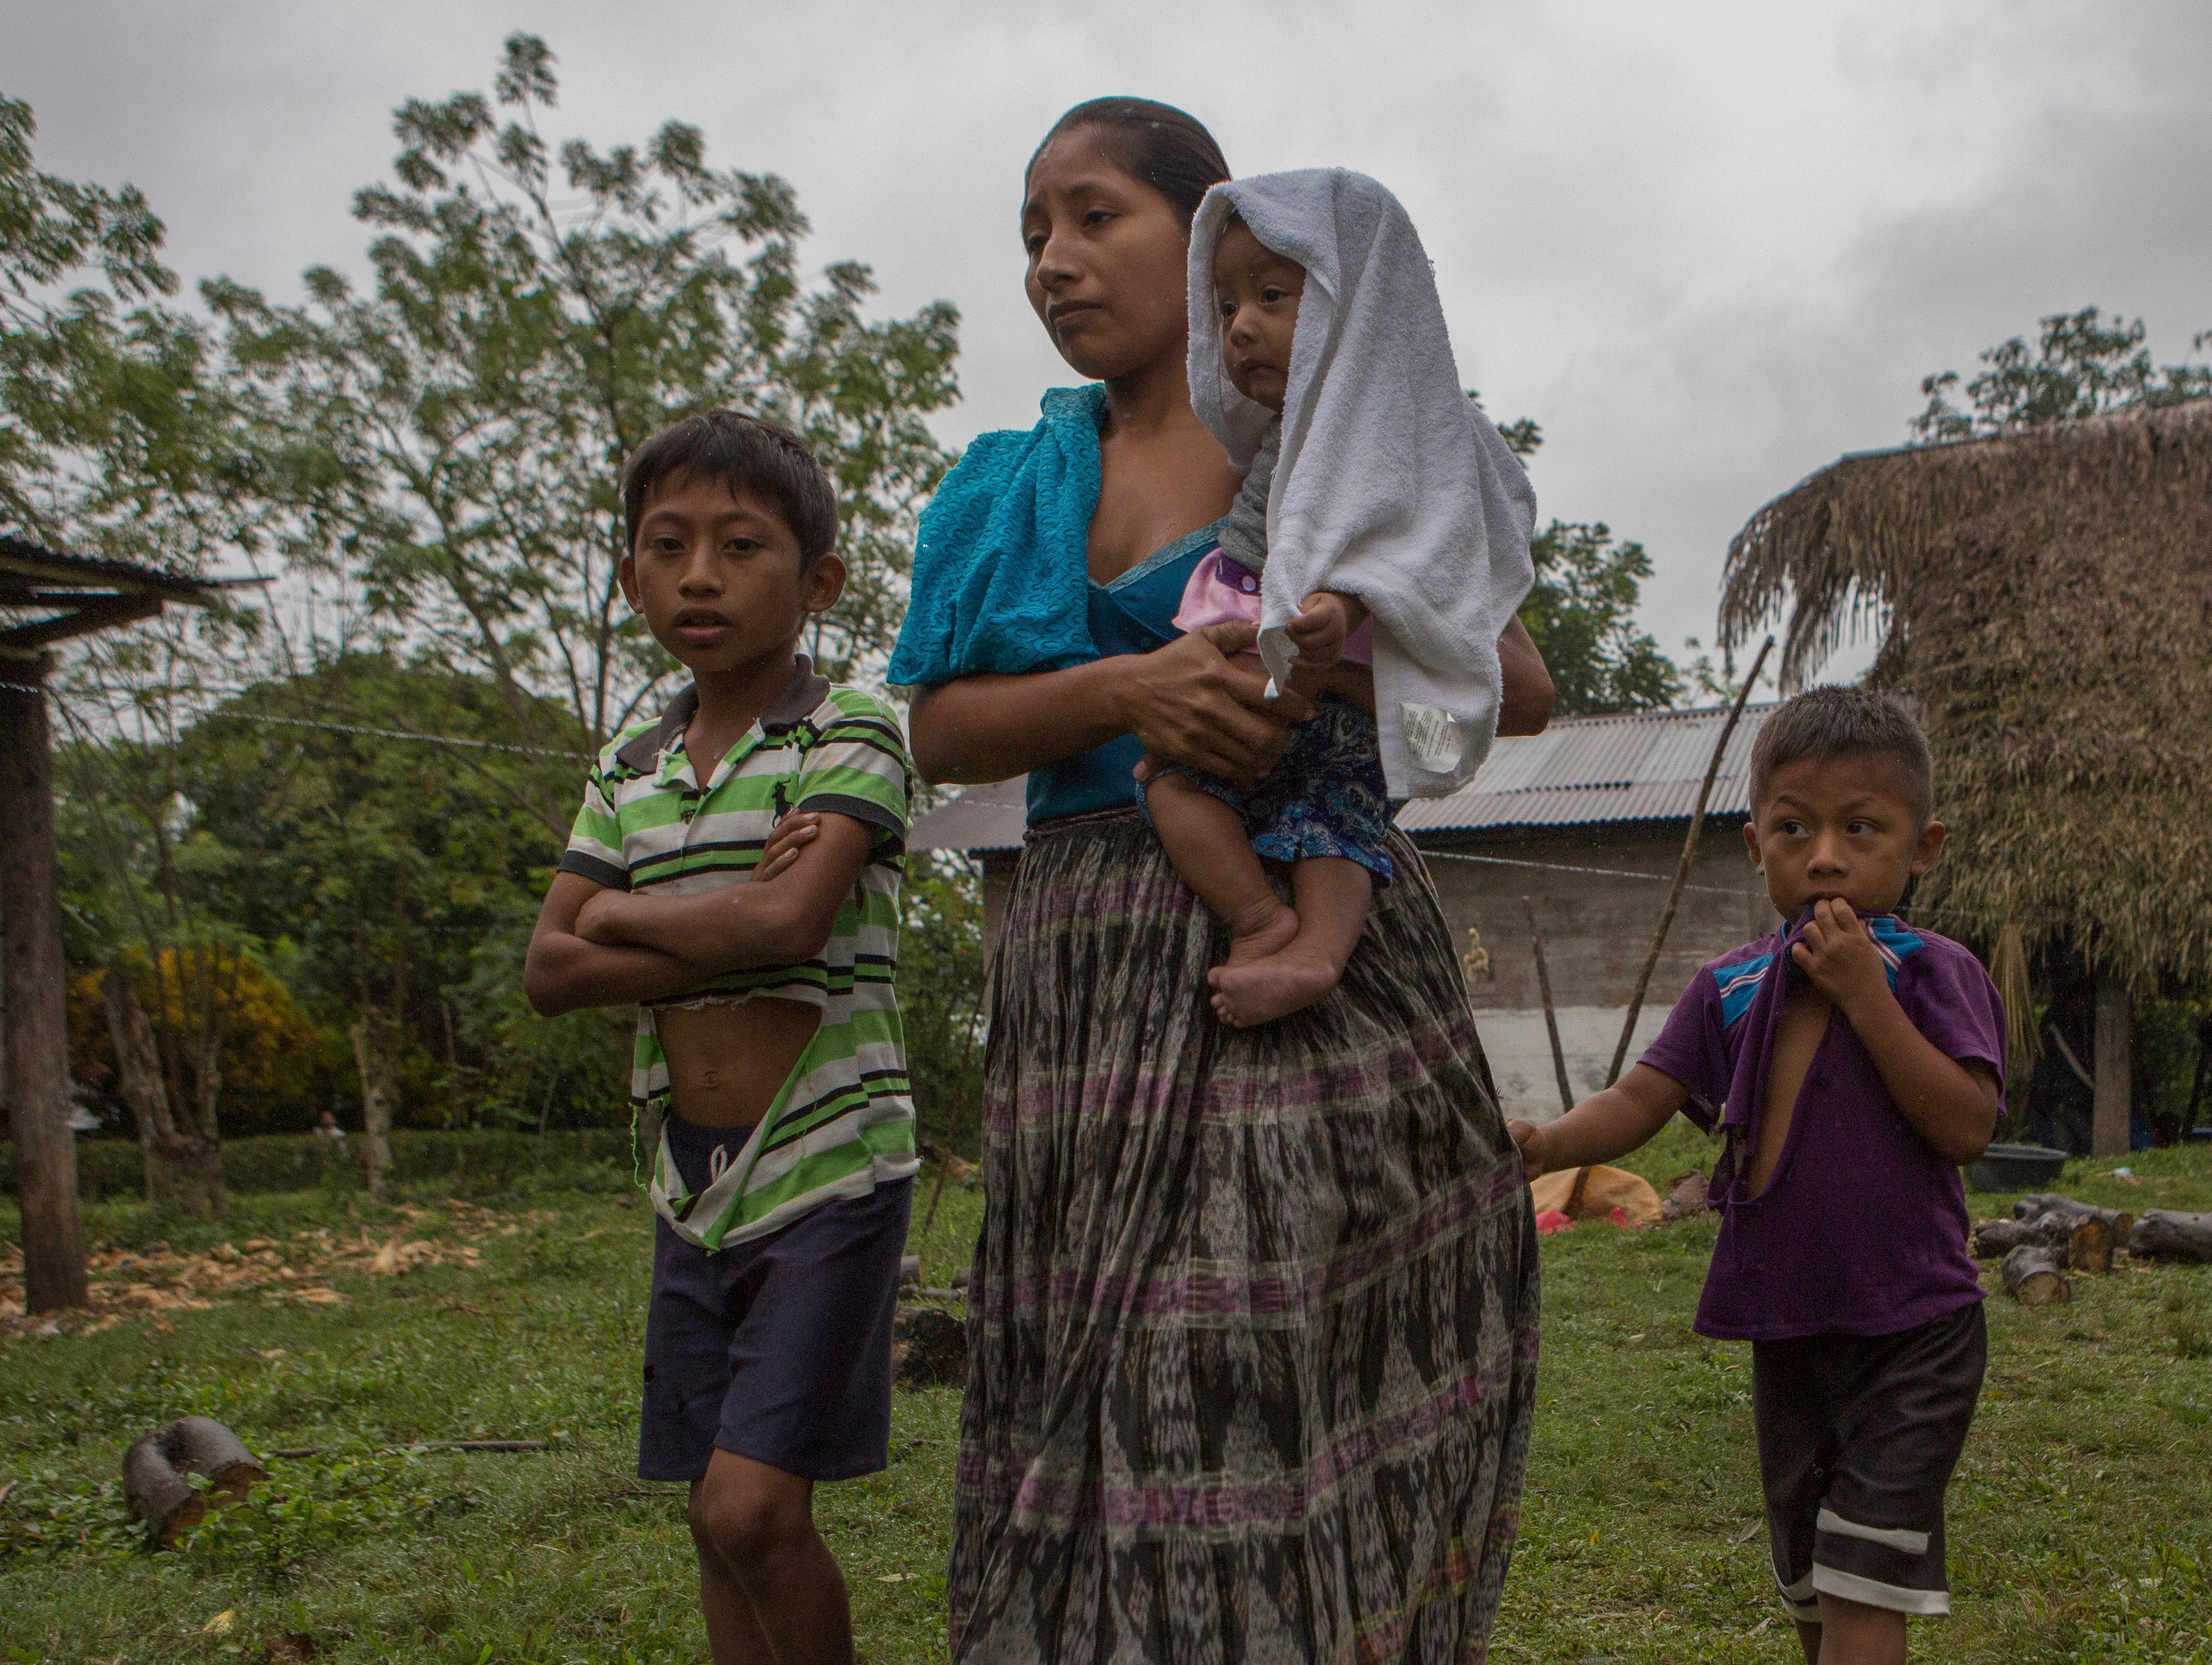 Dec. 15, 2018: Claudia Maquin, 27, walks with her three children, Abdel Johnatan Domingo Caal Maquin, 9, left, Angela Surely Mariela Caal Maquin, 6 months, middle, and Elvis Radamel Aquiles Caal Maquin, 5, right, as they leave Domingo Caal Chub's house, Claudia's father-in-law, in Raxruha, Guatemala.Claudia Maquin's daughter, 7-year-old Jakelin Amei Rosmery Caal, died in a Texas hospital, two days after being taken into custody by border patrol agents in a remote stretch of New Mexico desert.